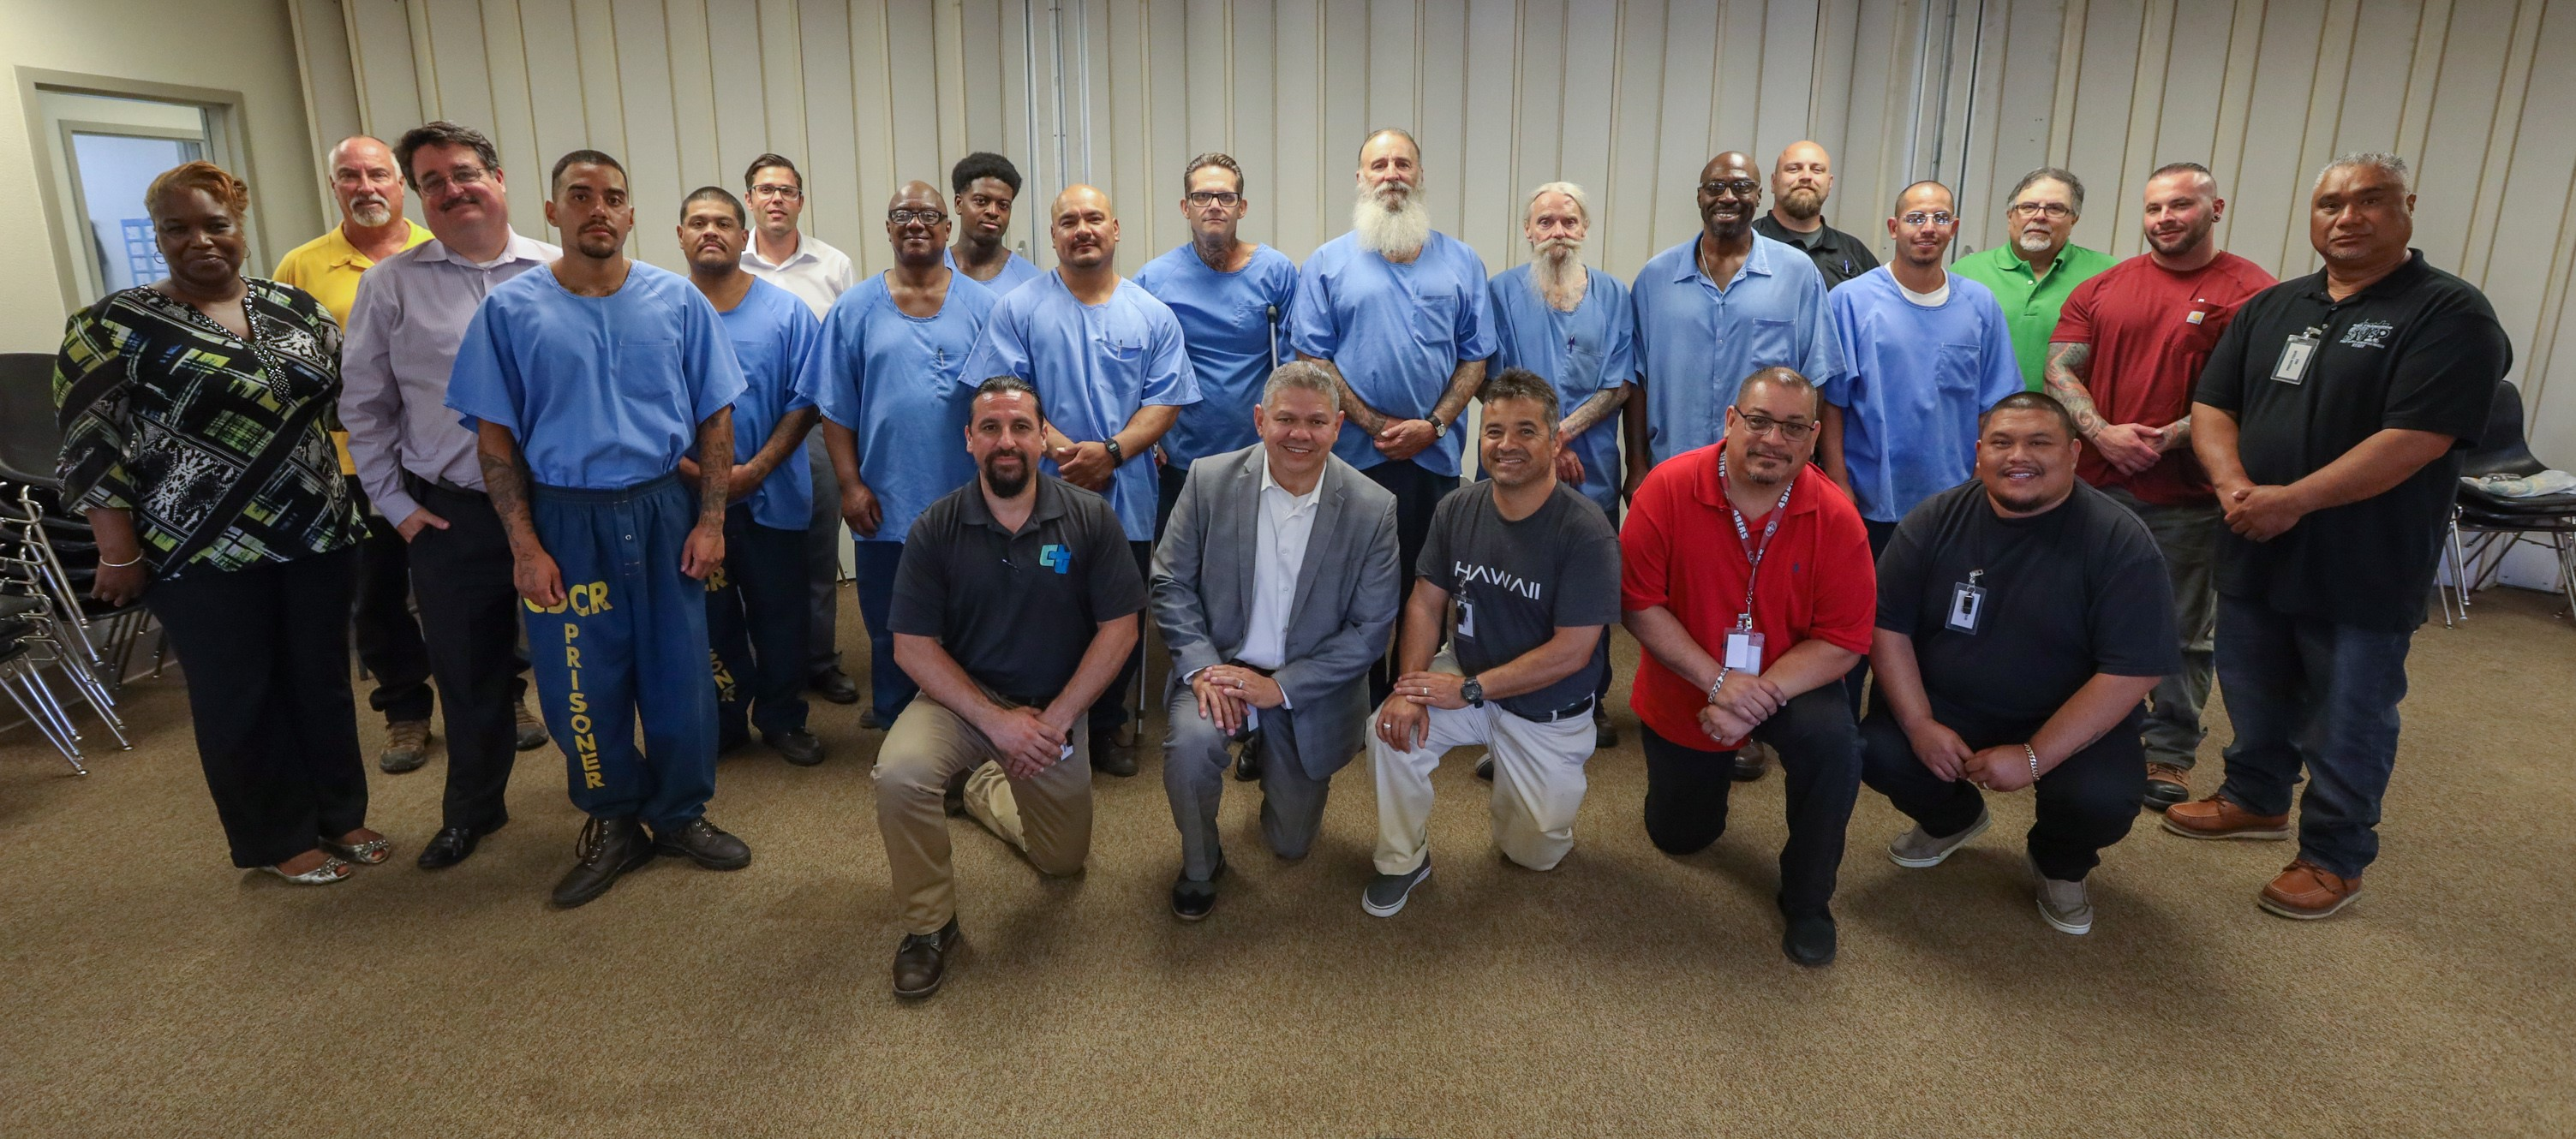 Inmates stand behind prison staff members.